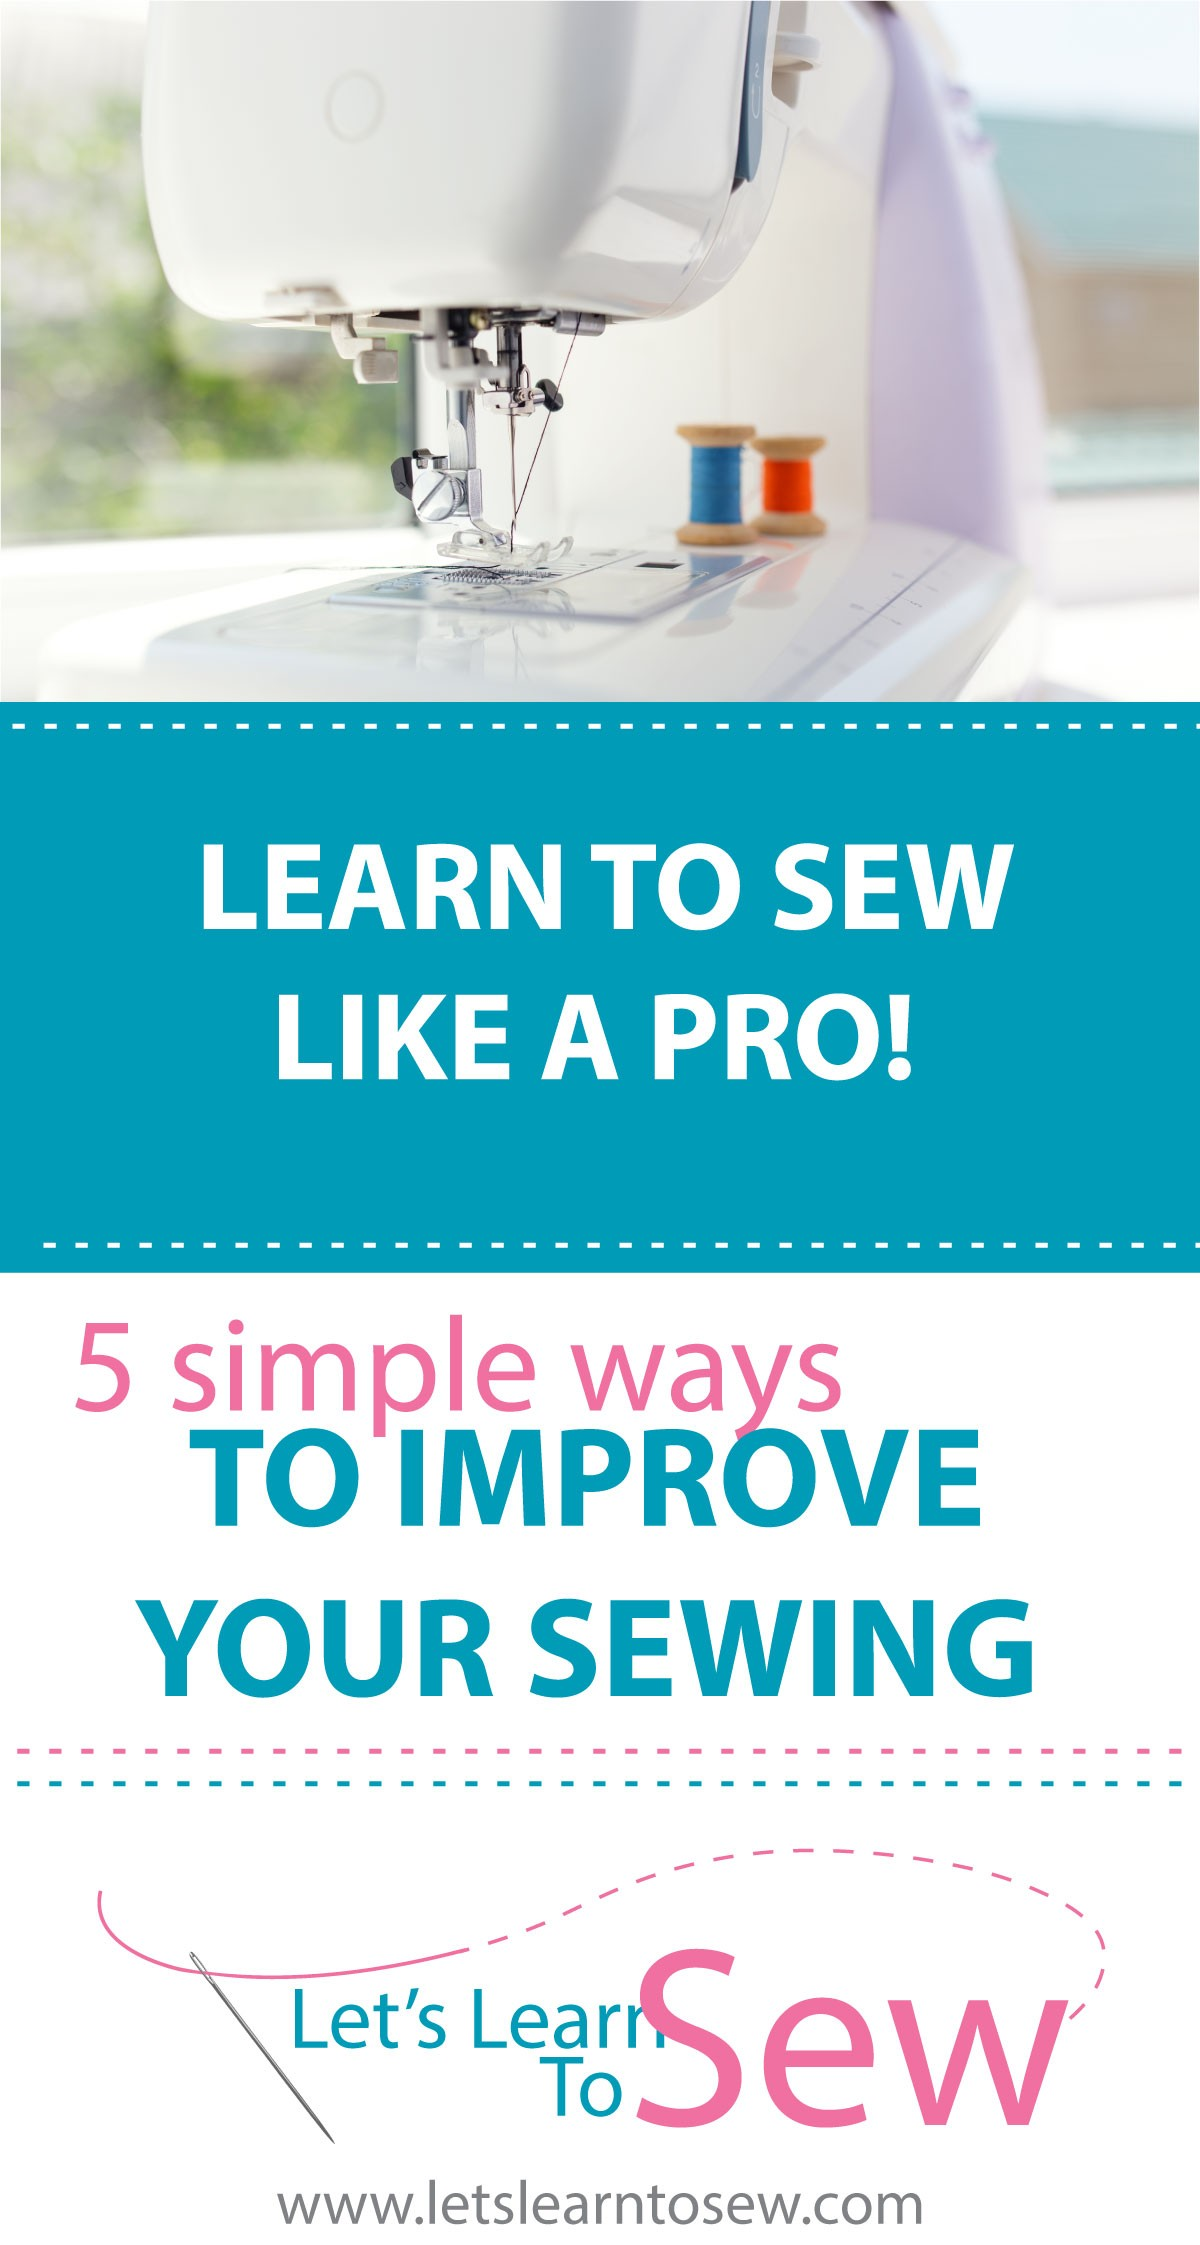 Sew Like A Pro: 5 Tips To Improve Your Sewing